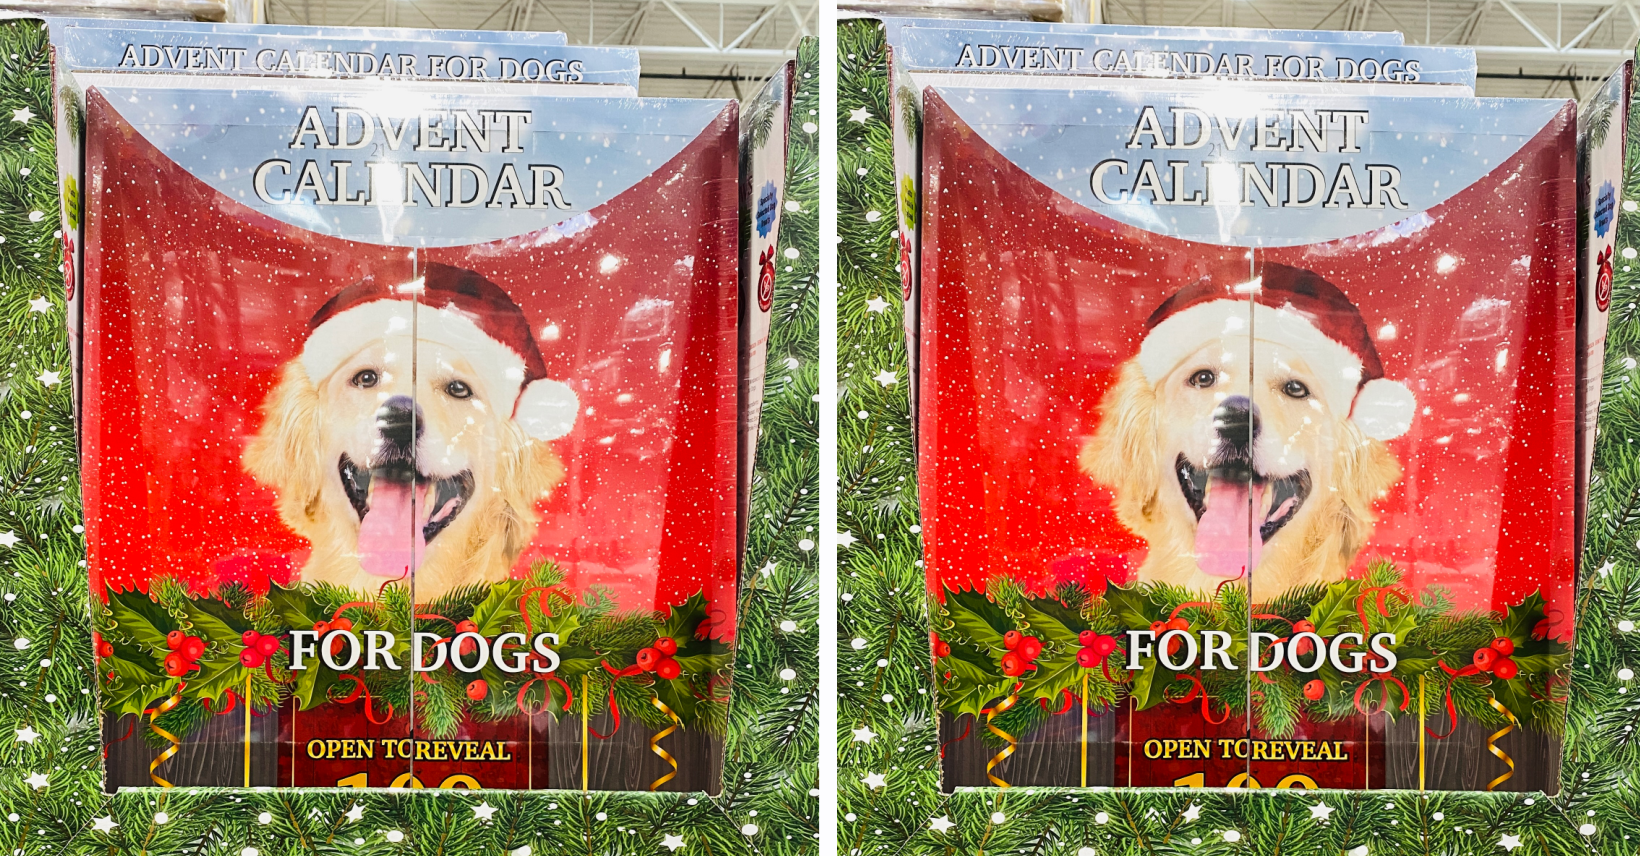 Costco Is Selling A Dog Advent Calendar Filled With 100 Meaty Treats How to keep a mummy. costco is selling a dog advent calendar